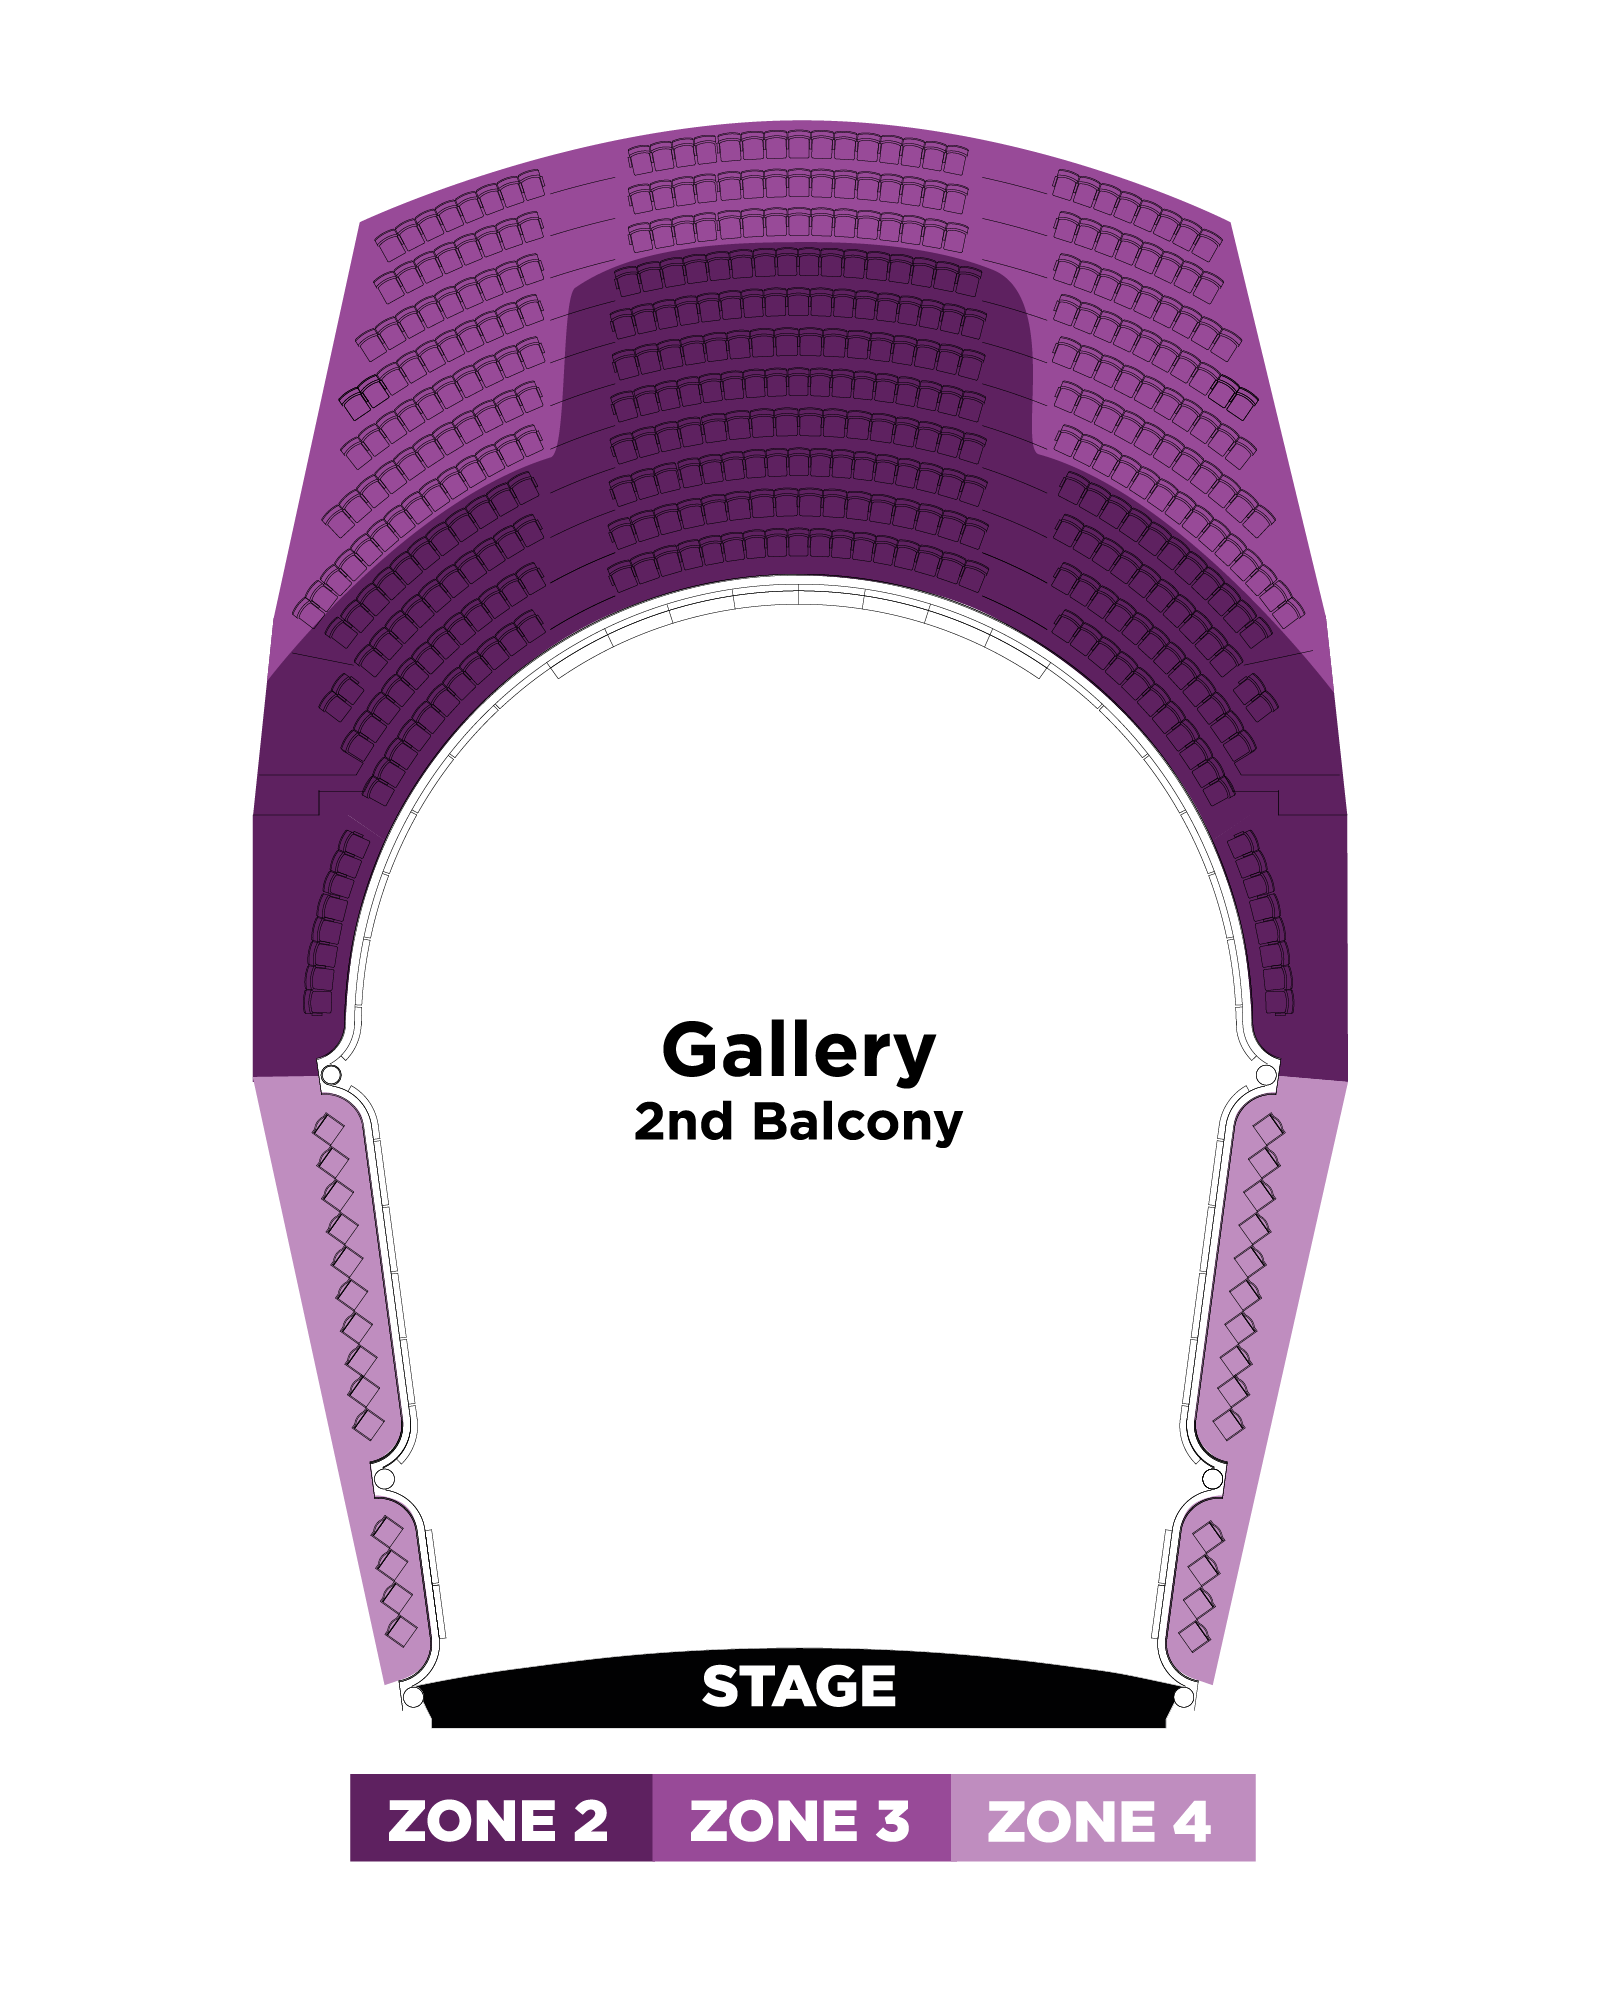 Gallery Seating Map